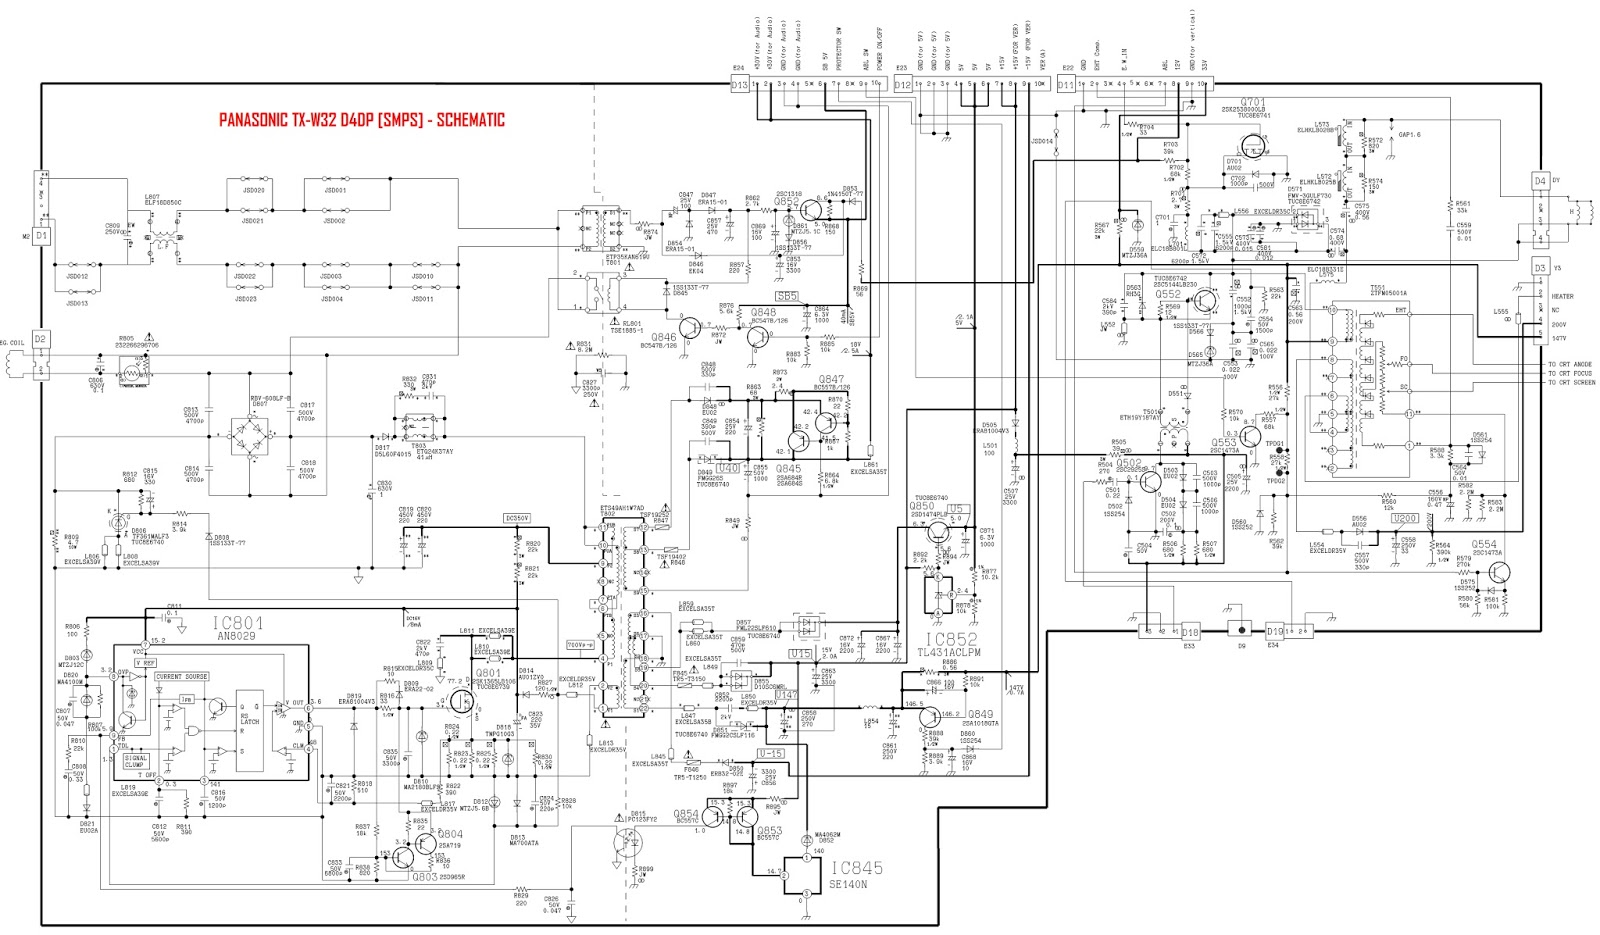 Panasonic Tv Circuit Board Diagrams  Schematics  Pdf Service Manuals  Fault Codes